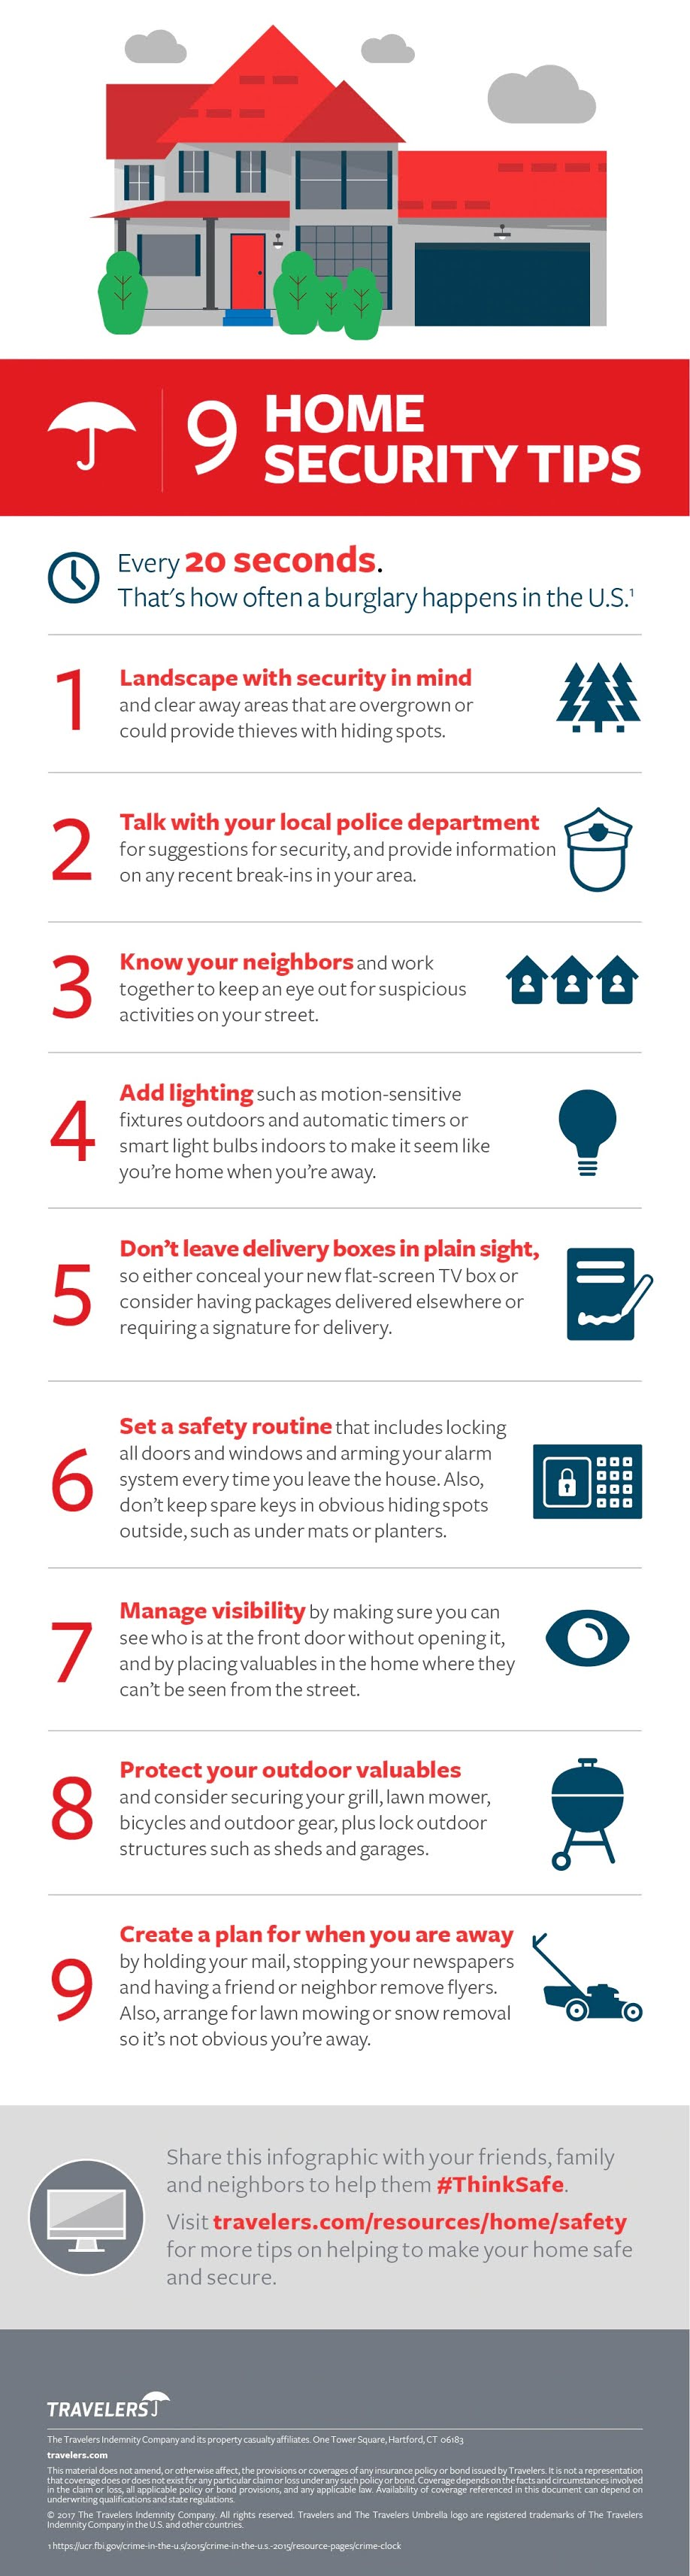 9 Home Security Tips #infographic